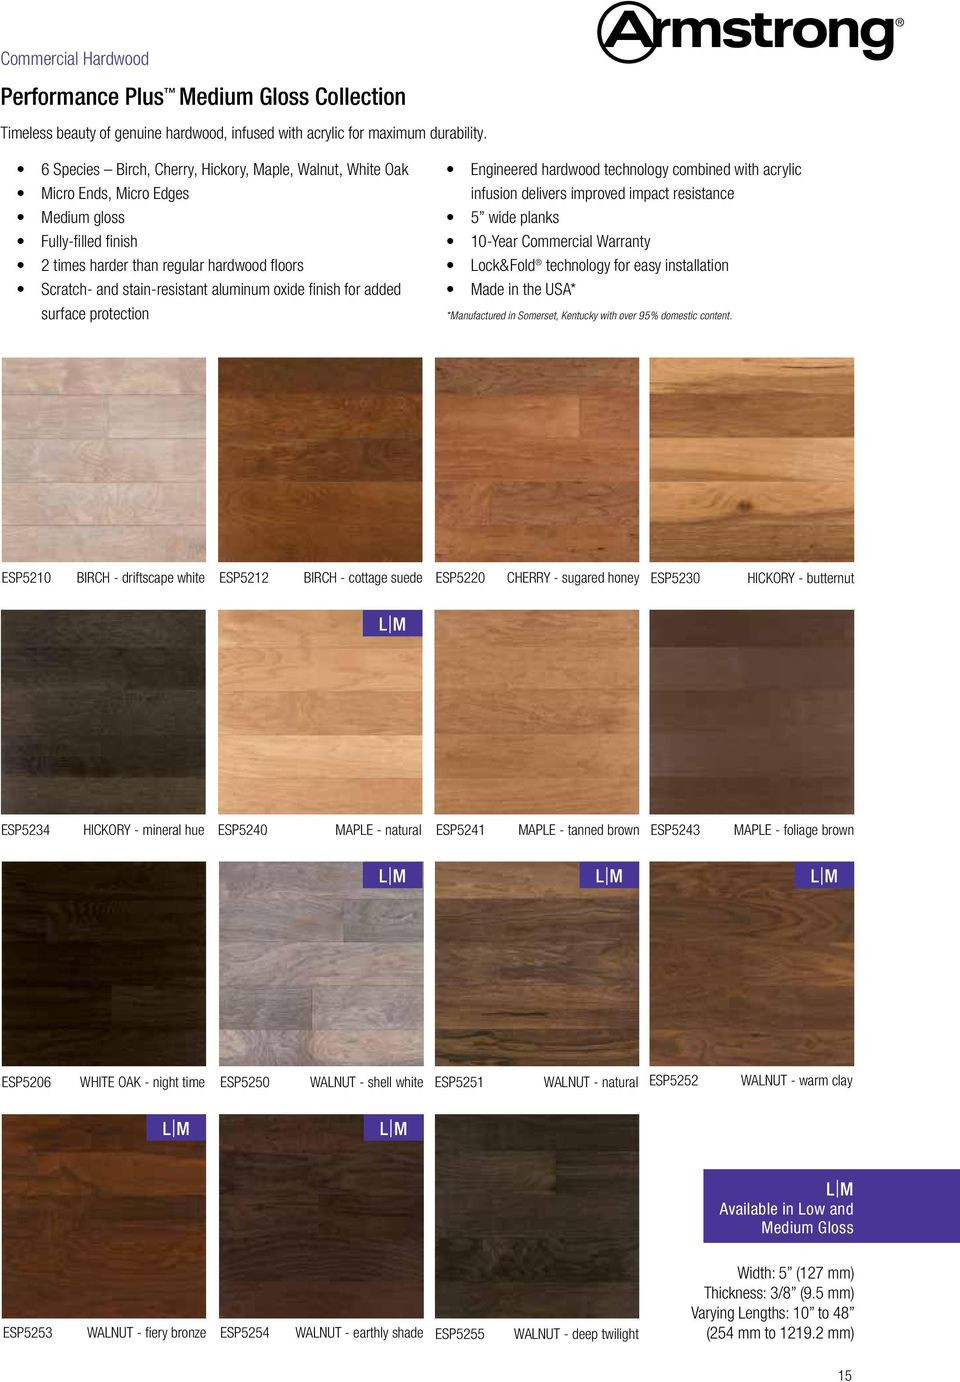 mohawk hardwood flooring golden oak of performance plus midtown pdf intended for oxide finish for added surface protection engineered hardwood technology combined with acrylic infusion delivers improved impact